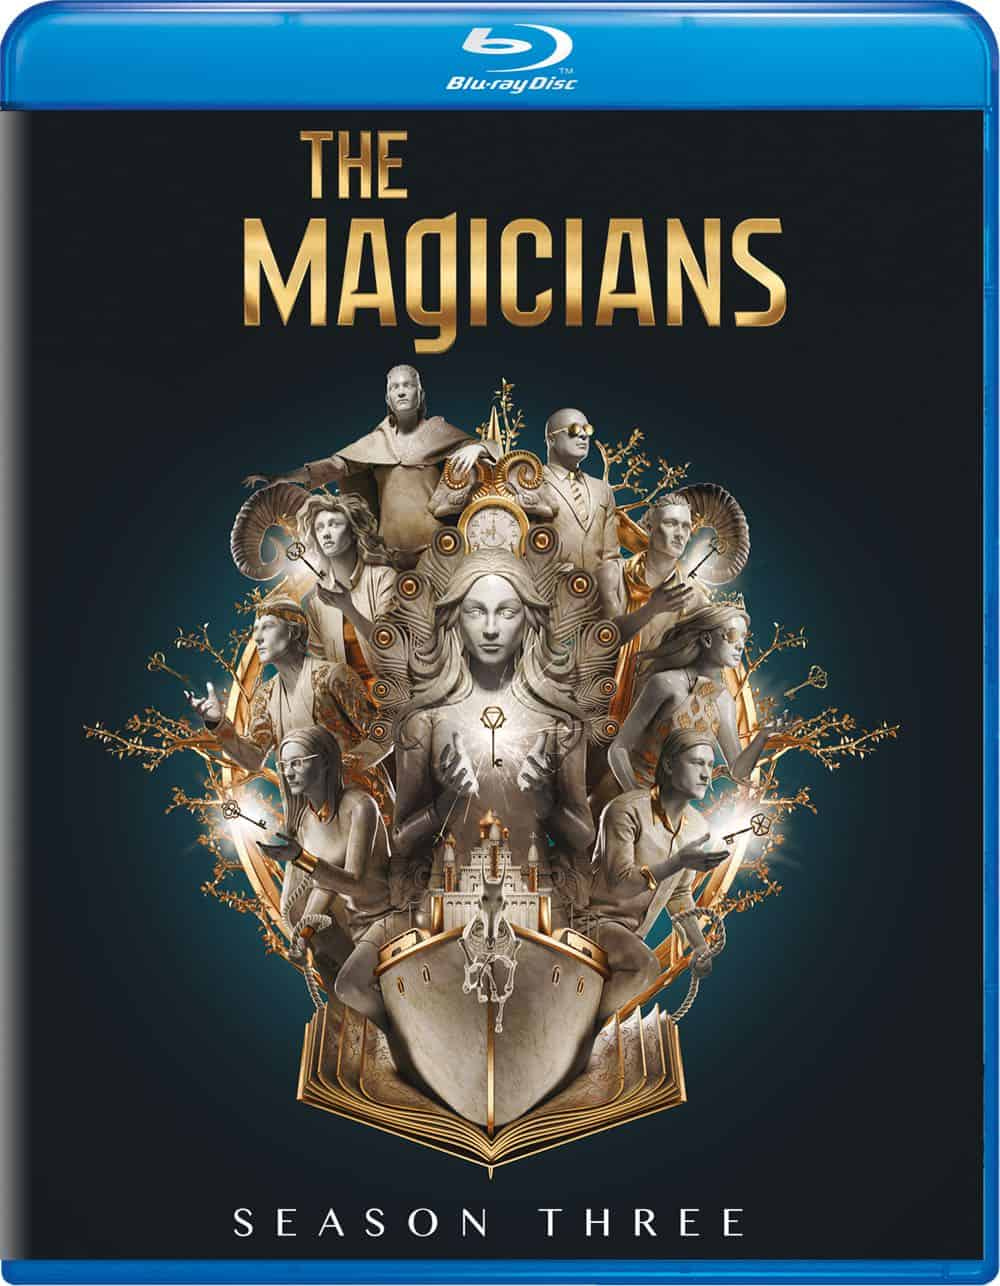 The Magicians Season 3 Bluray Cover 1